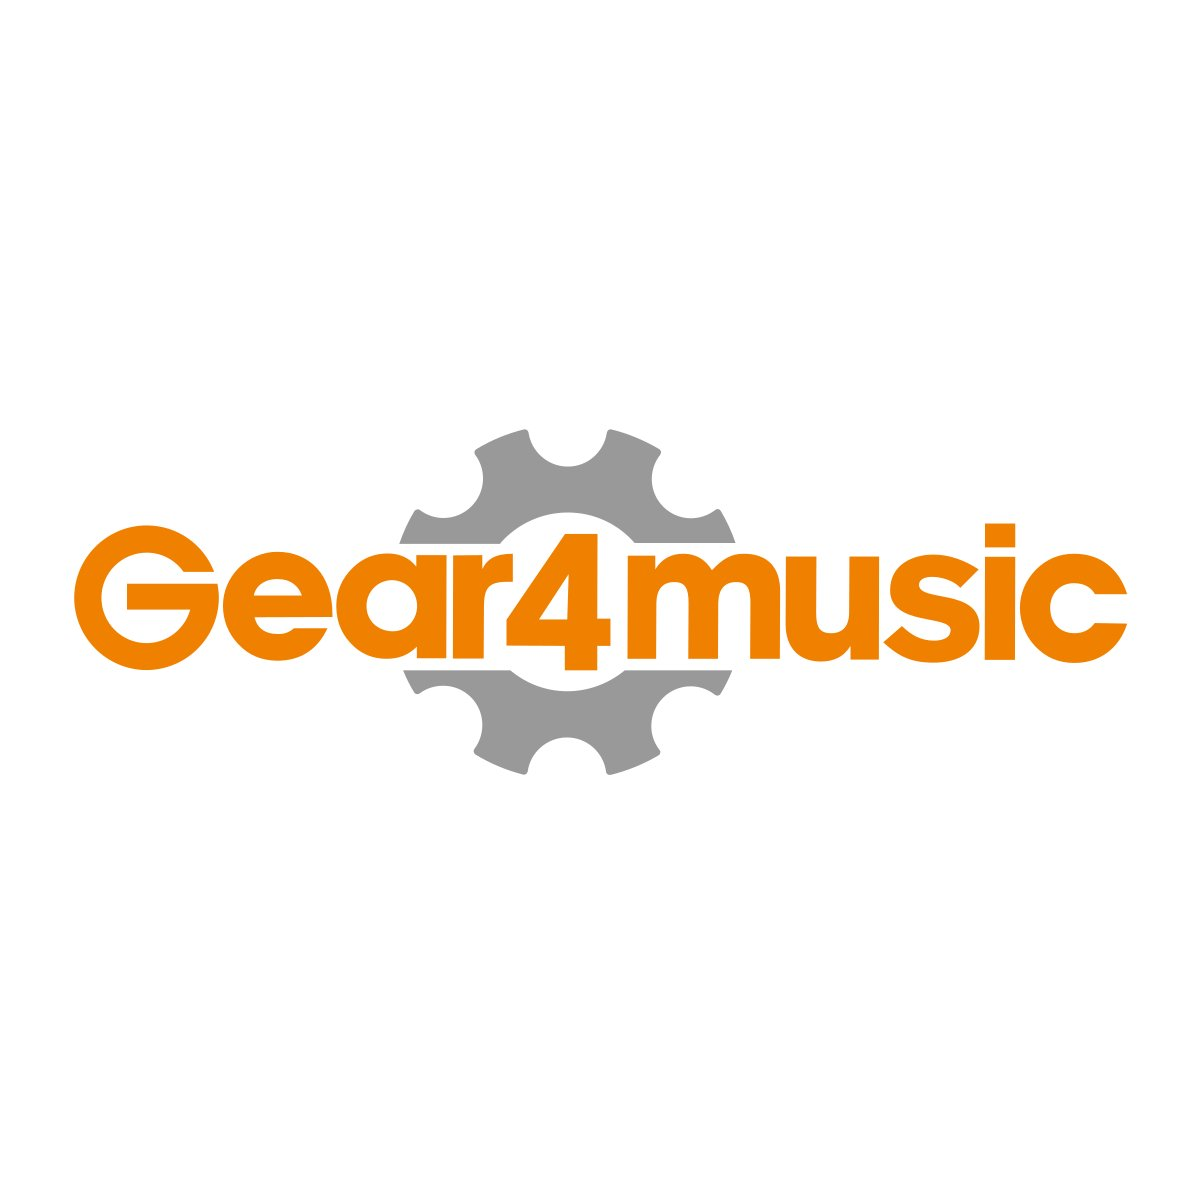 Deluxe supporto per tastiera by Gear4music